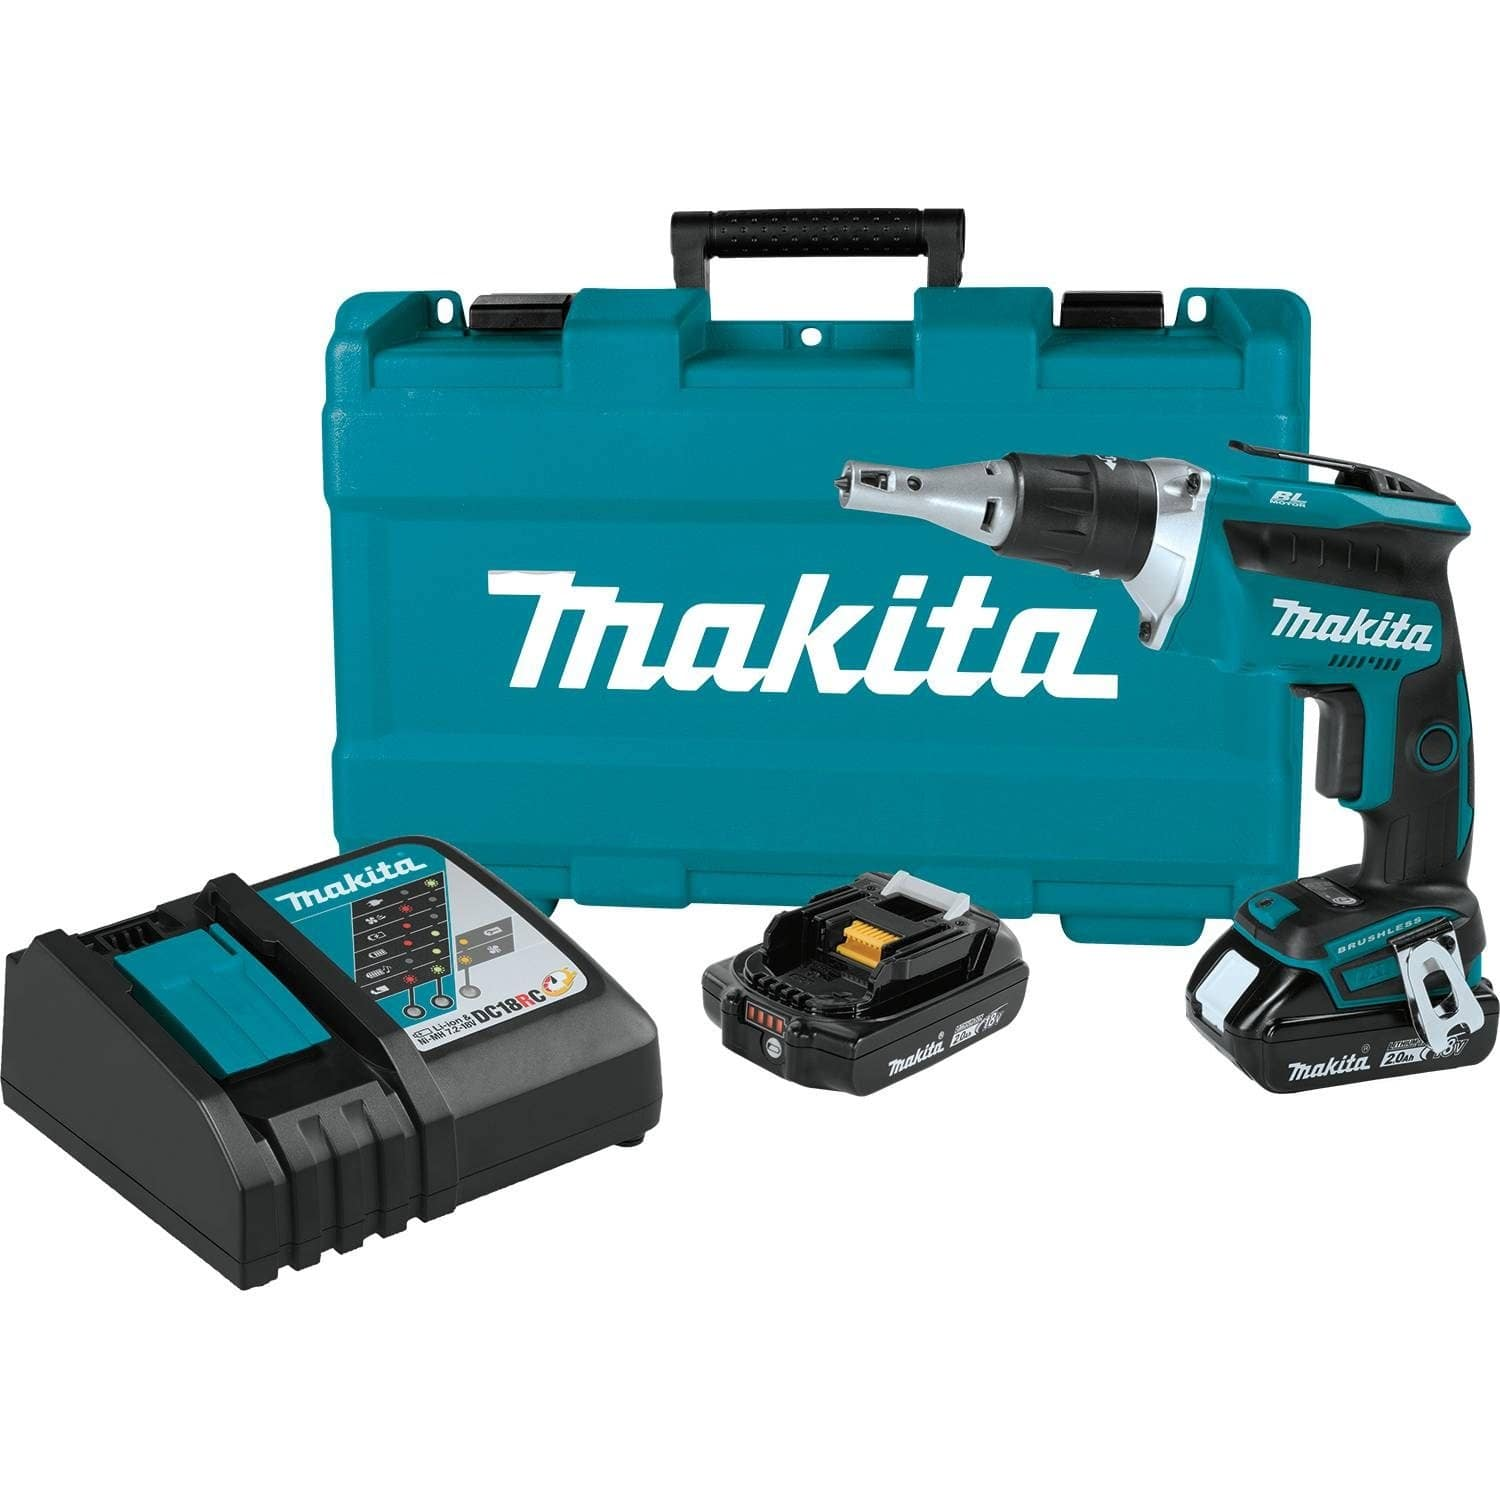 Makita XSF03R 18V LXT Lithium-Ion Brushless Cordless Drywall Screwdriver Kit (x2 2.0Ah batteries, charger and hard case) + free shipping $140